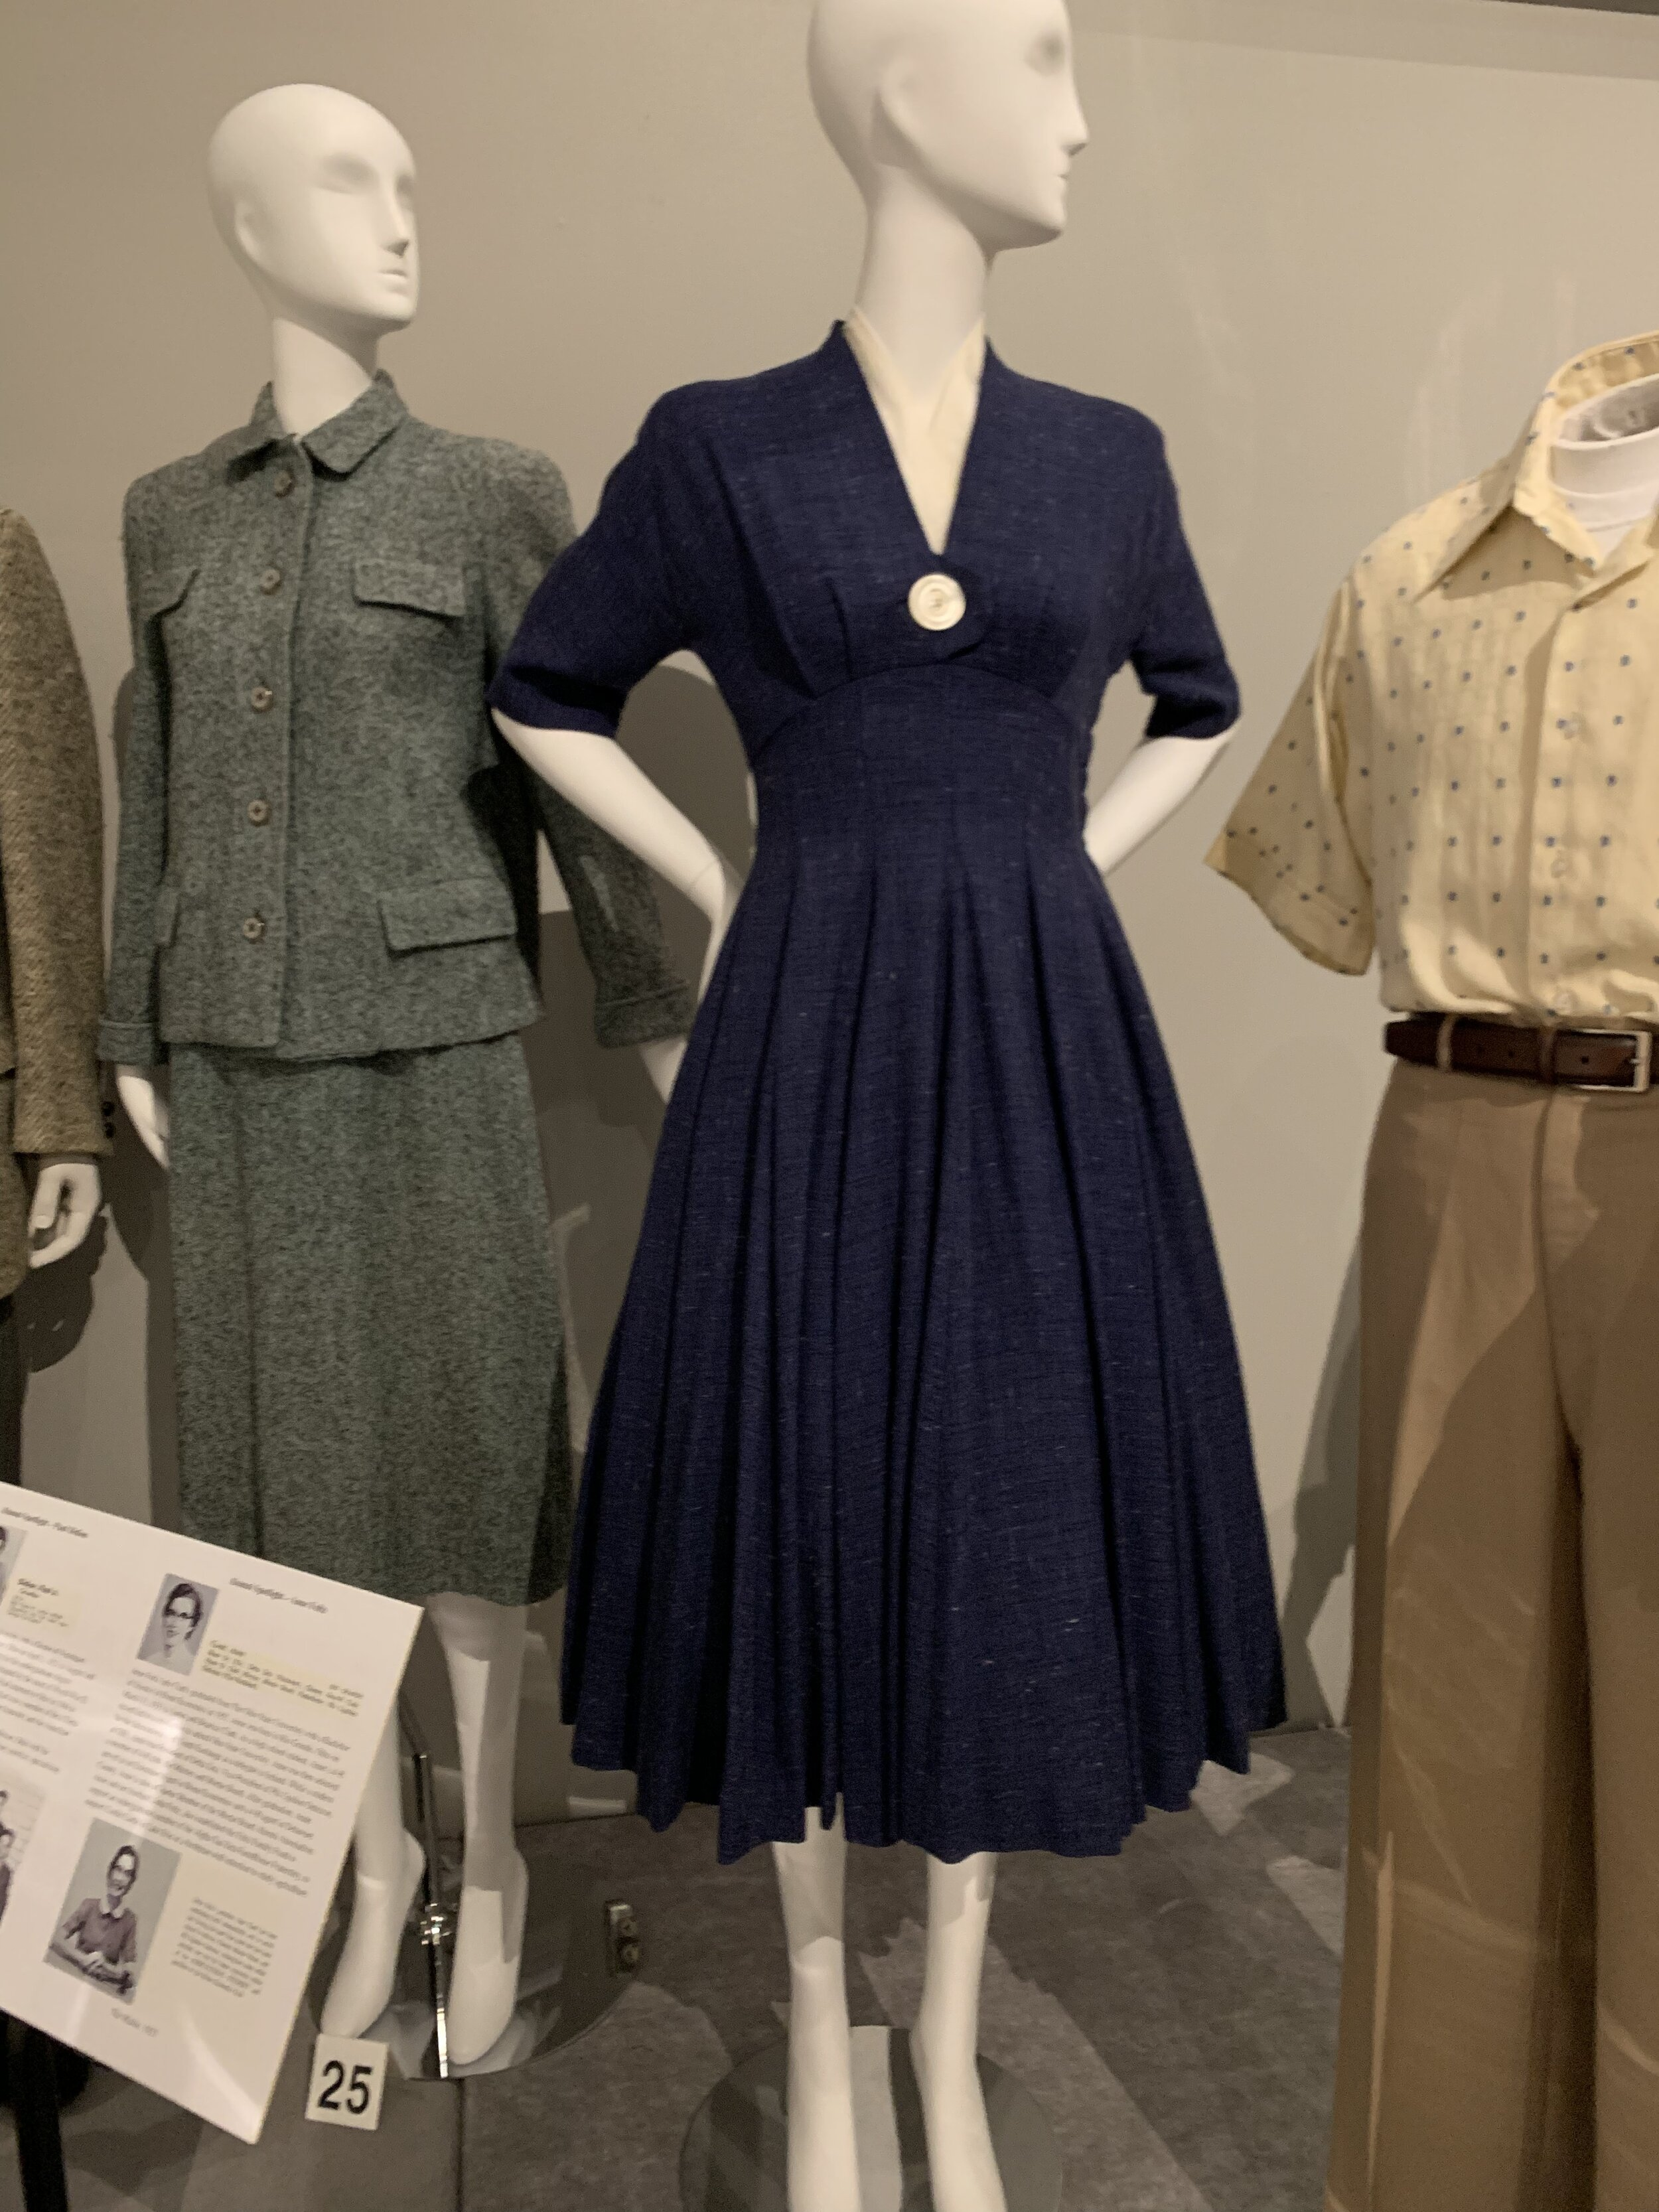 Images source: https://ehe.osu.edu/events/campus-fashion-150-years-college-style/